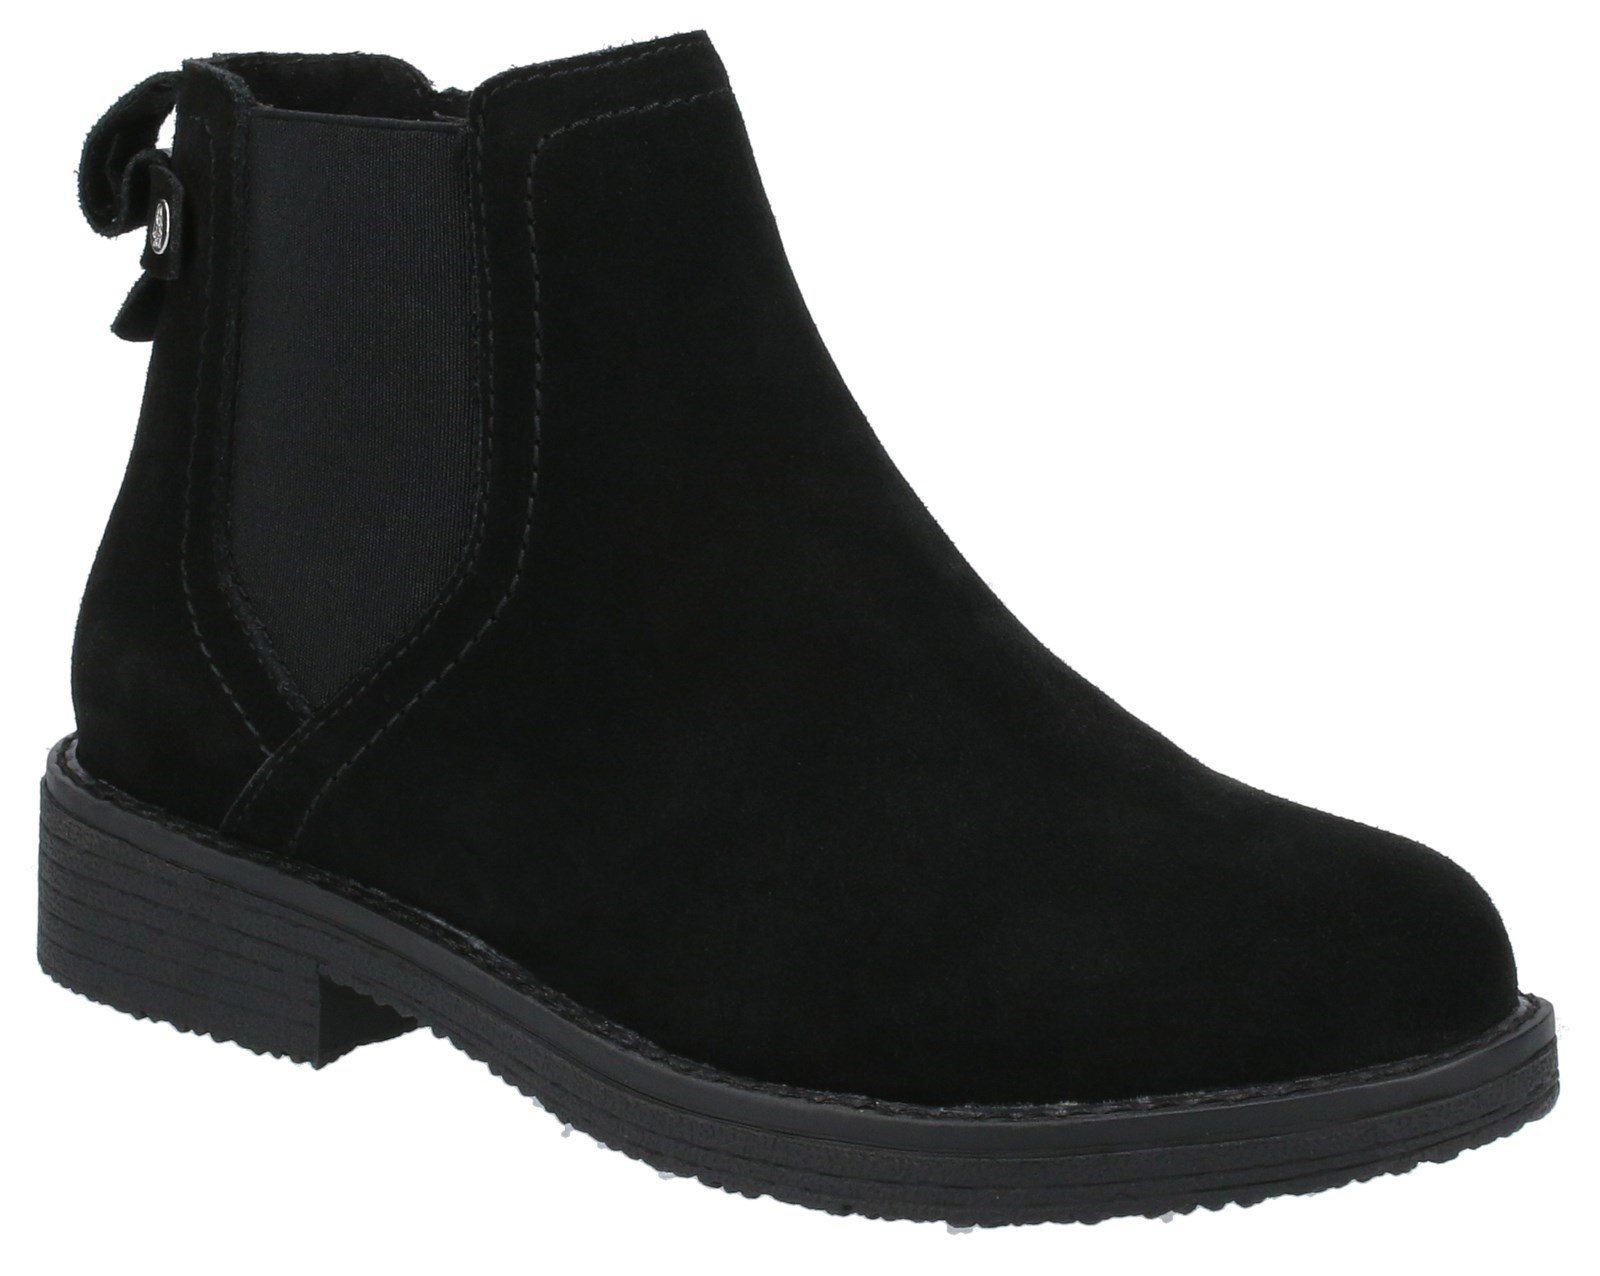 Hush Puppies Women's Maddy Ladies Ankle Boots Various Colours 31214 - Black 3